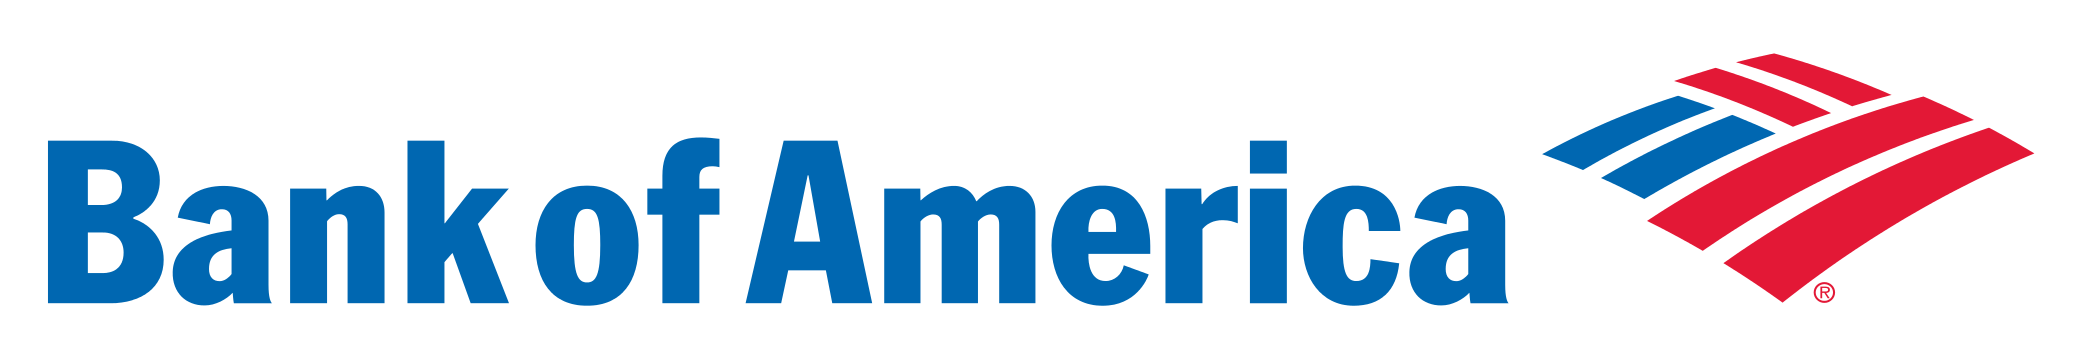 bank of america png